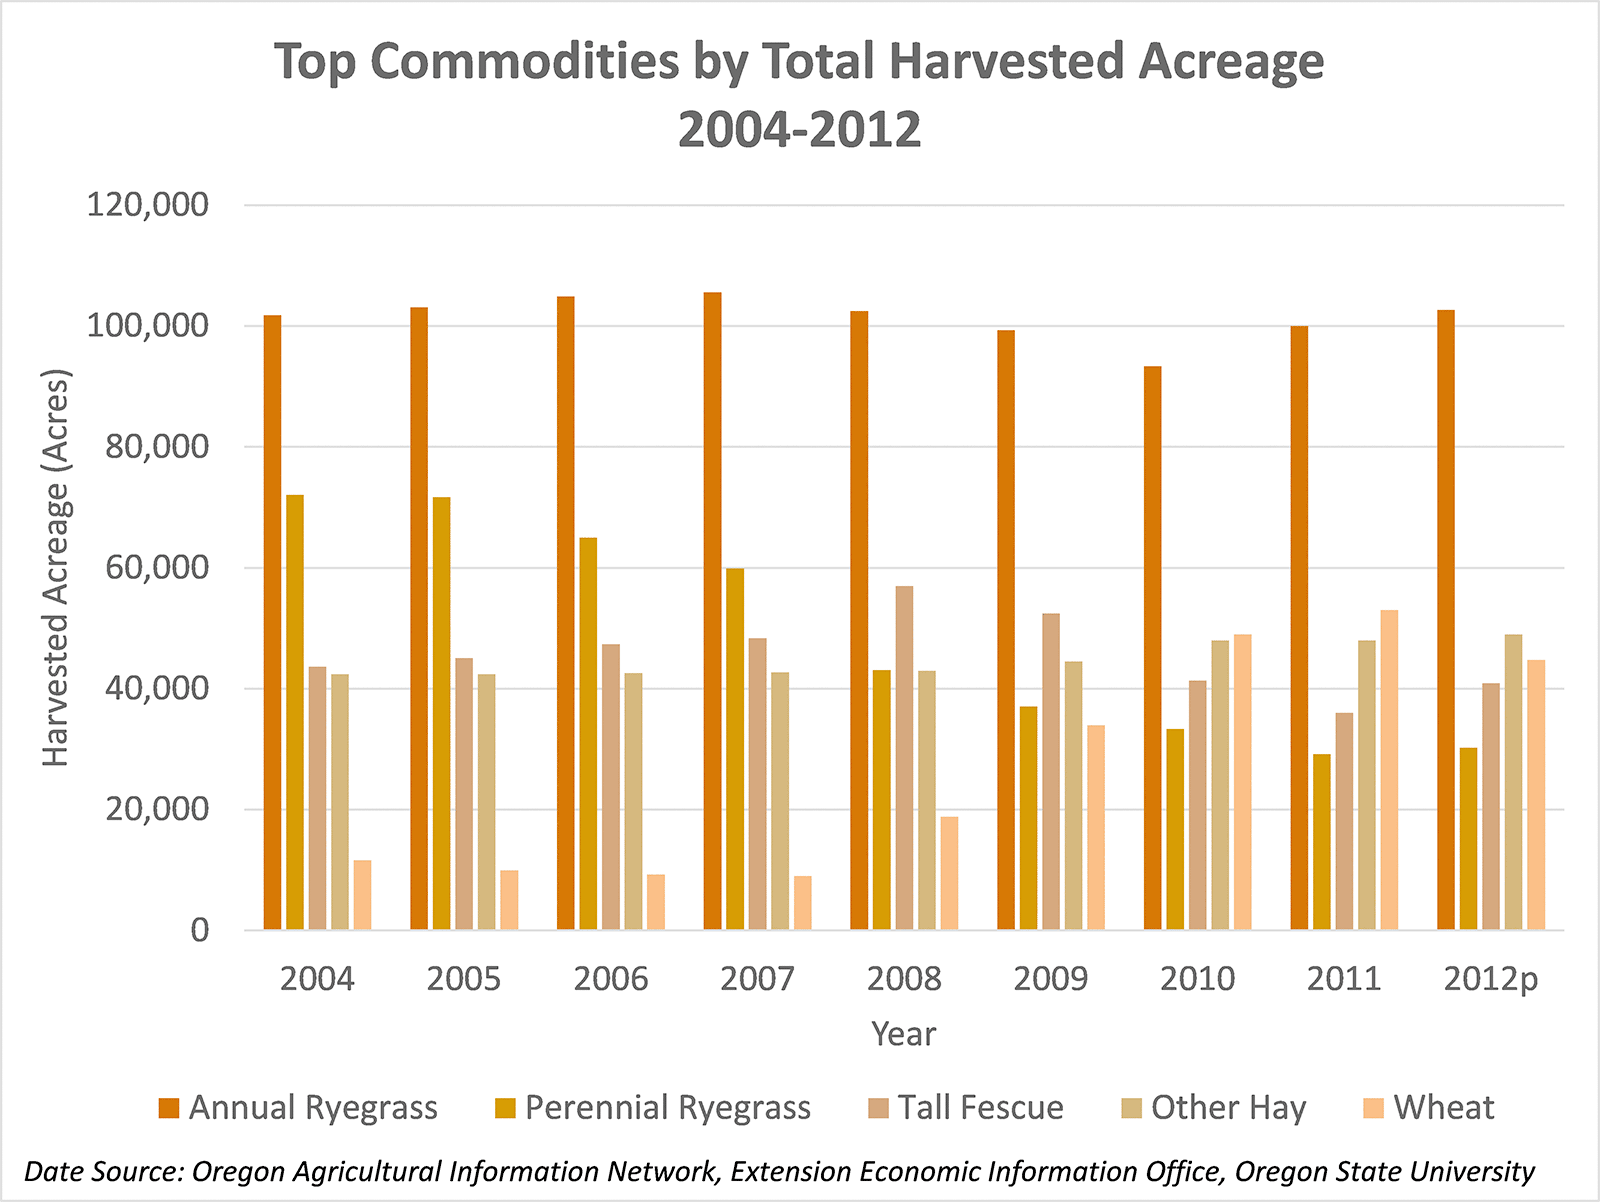 Top Commodities by Total Harvested Acreage